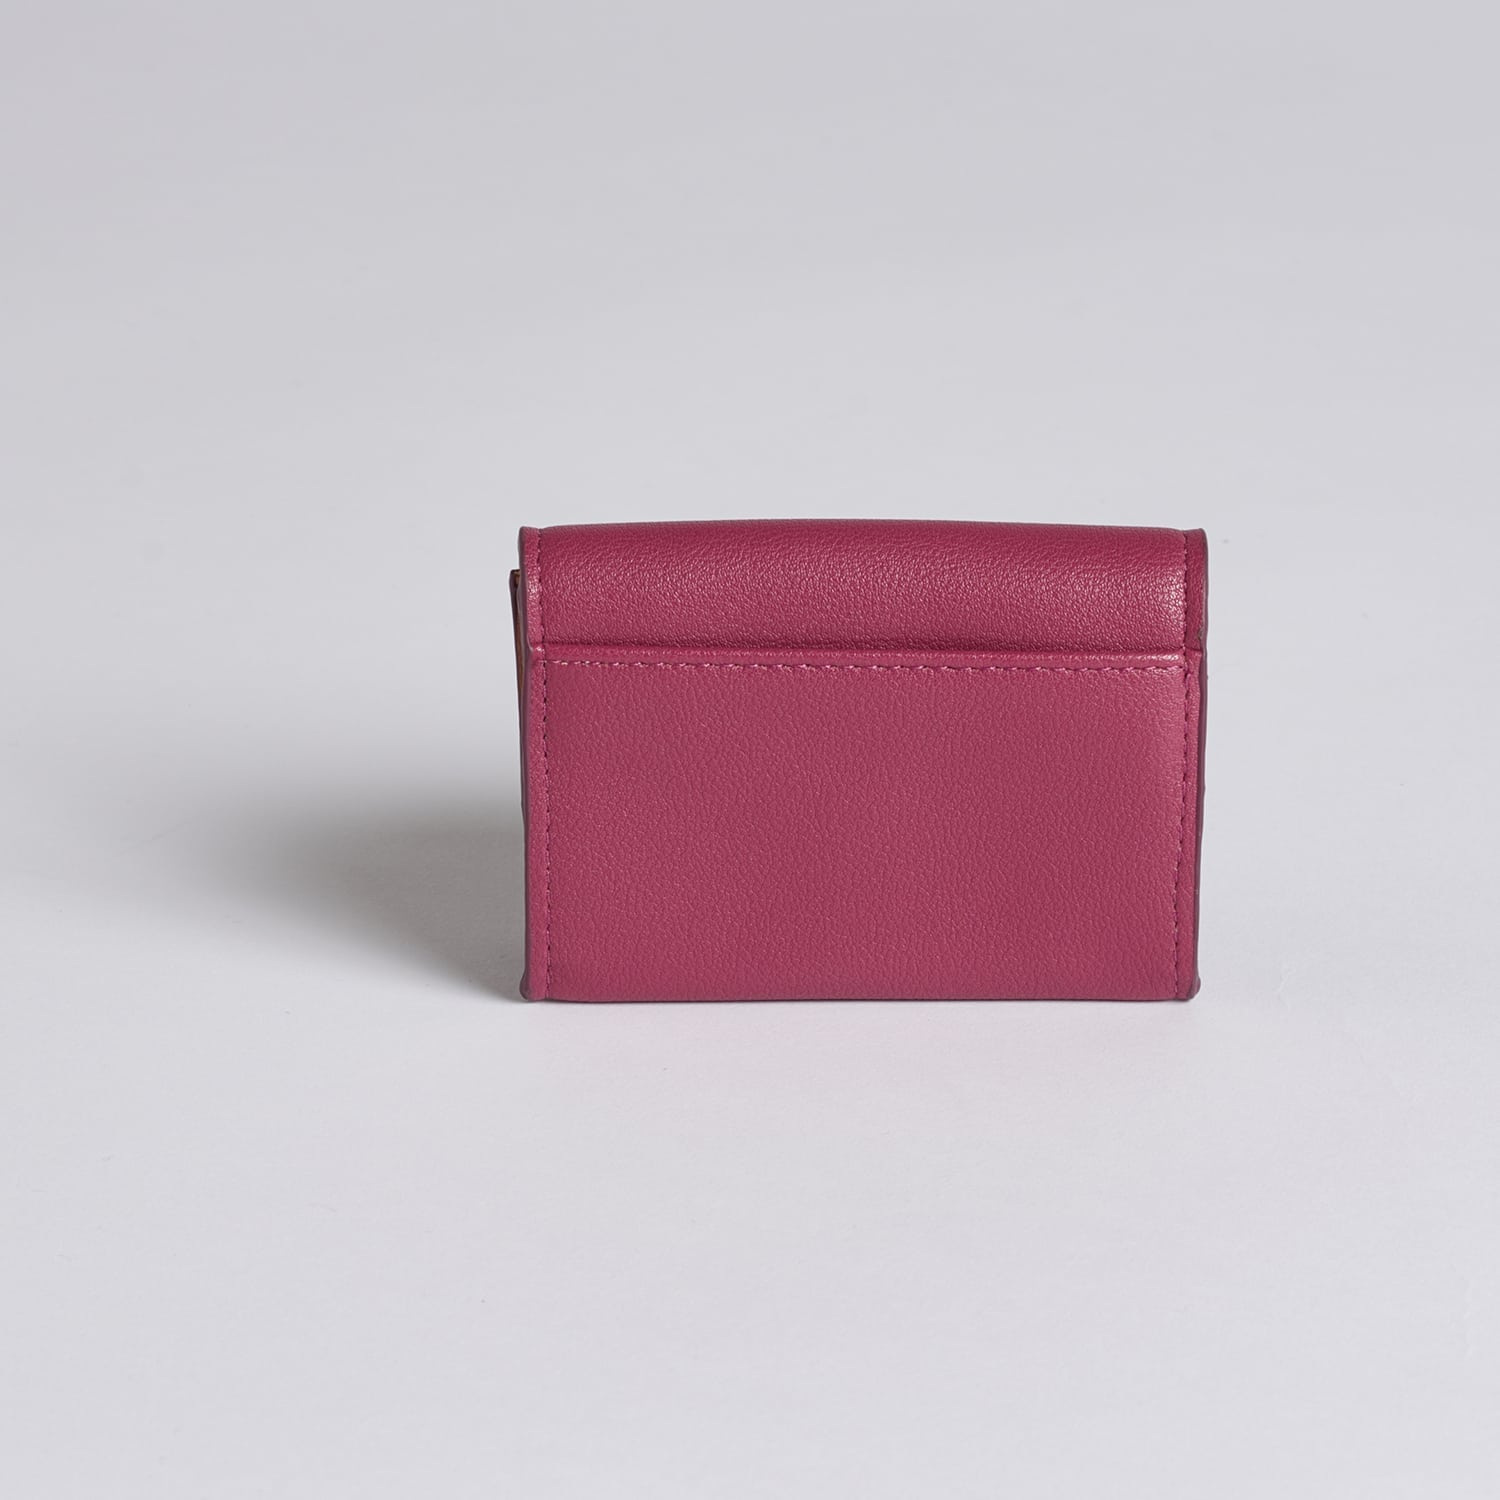 Fold over, envelope pixie mood credit card case. The carol case is magenta in colour